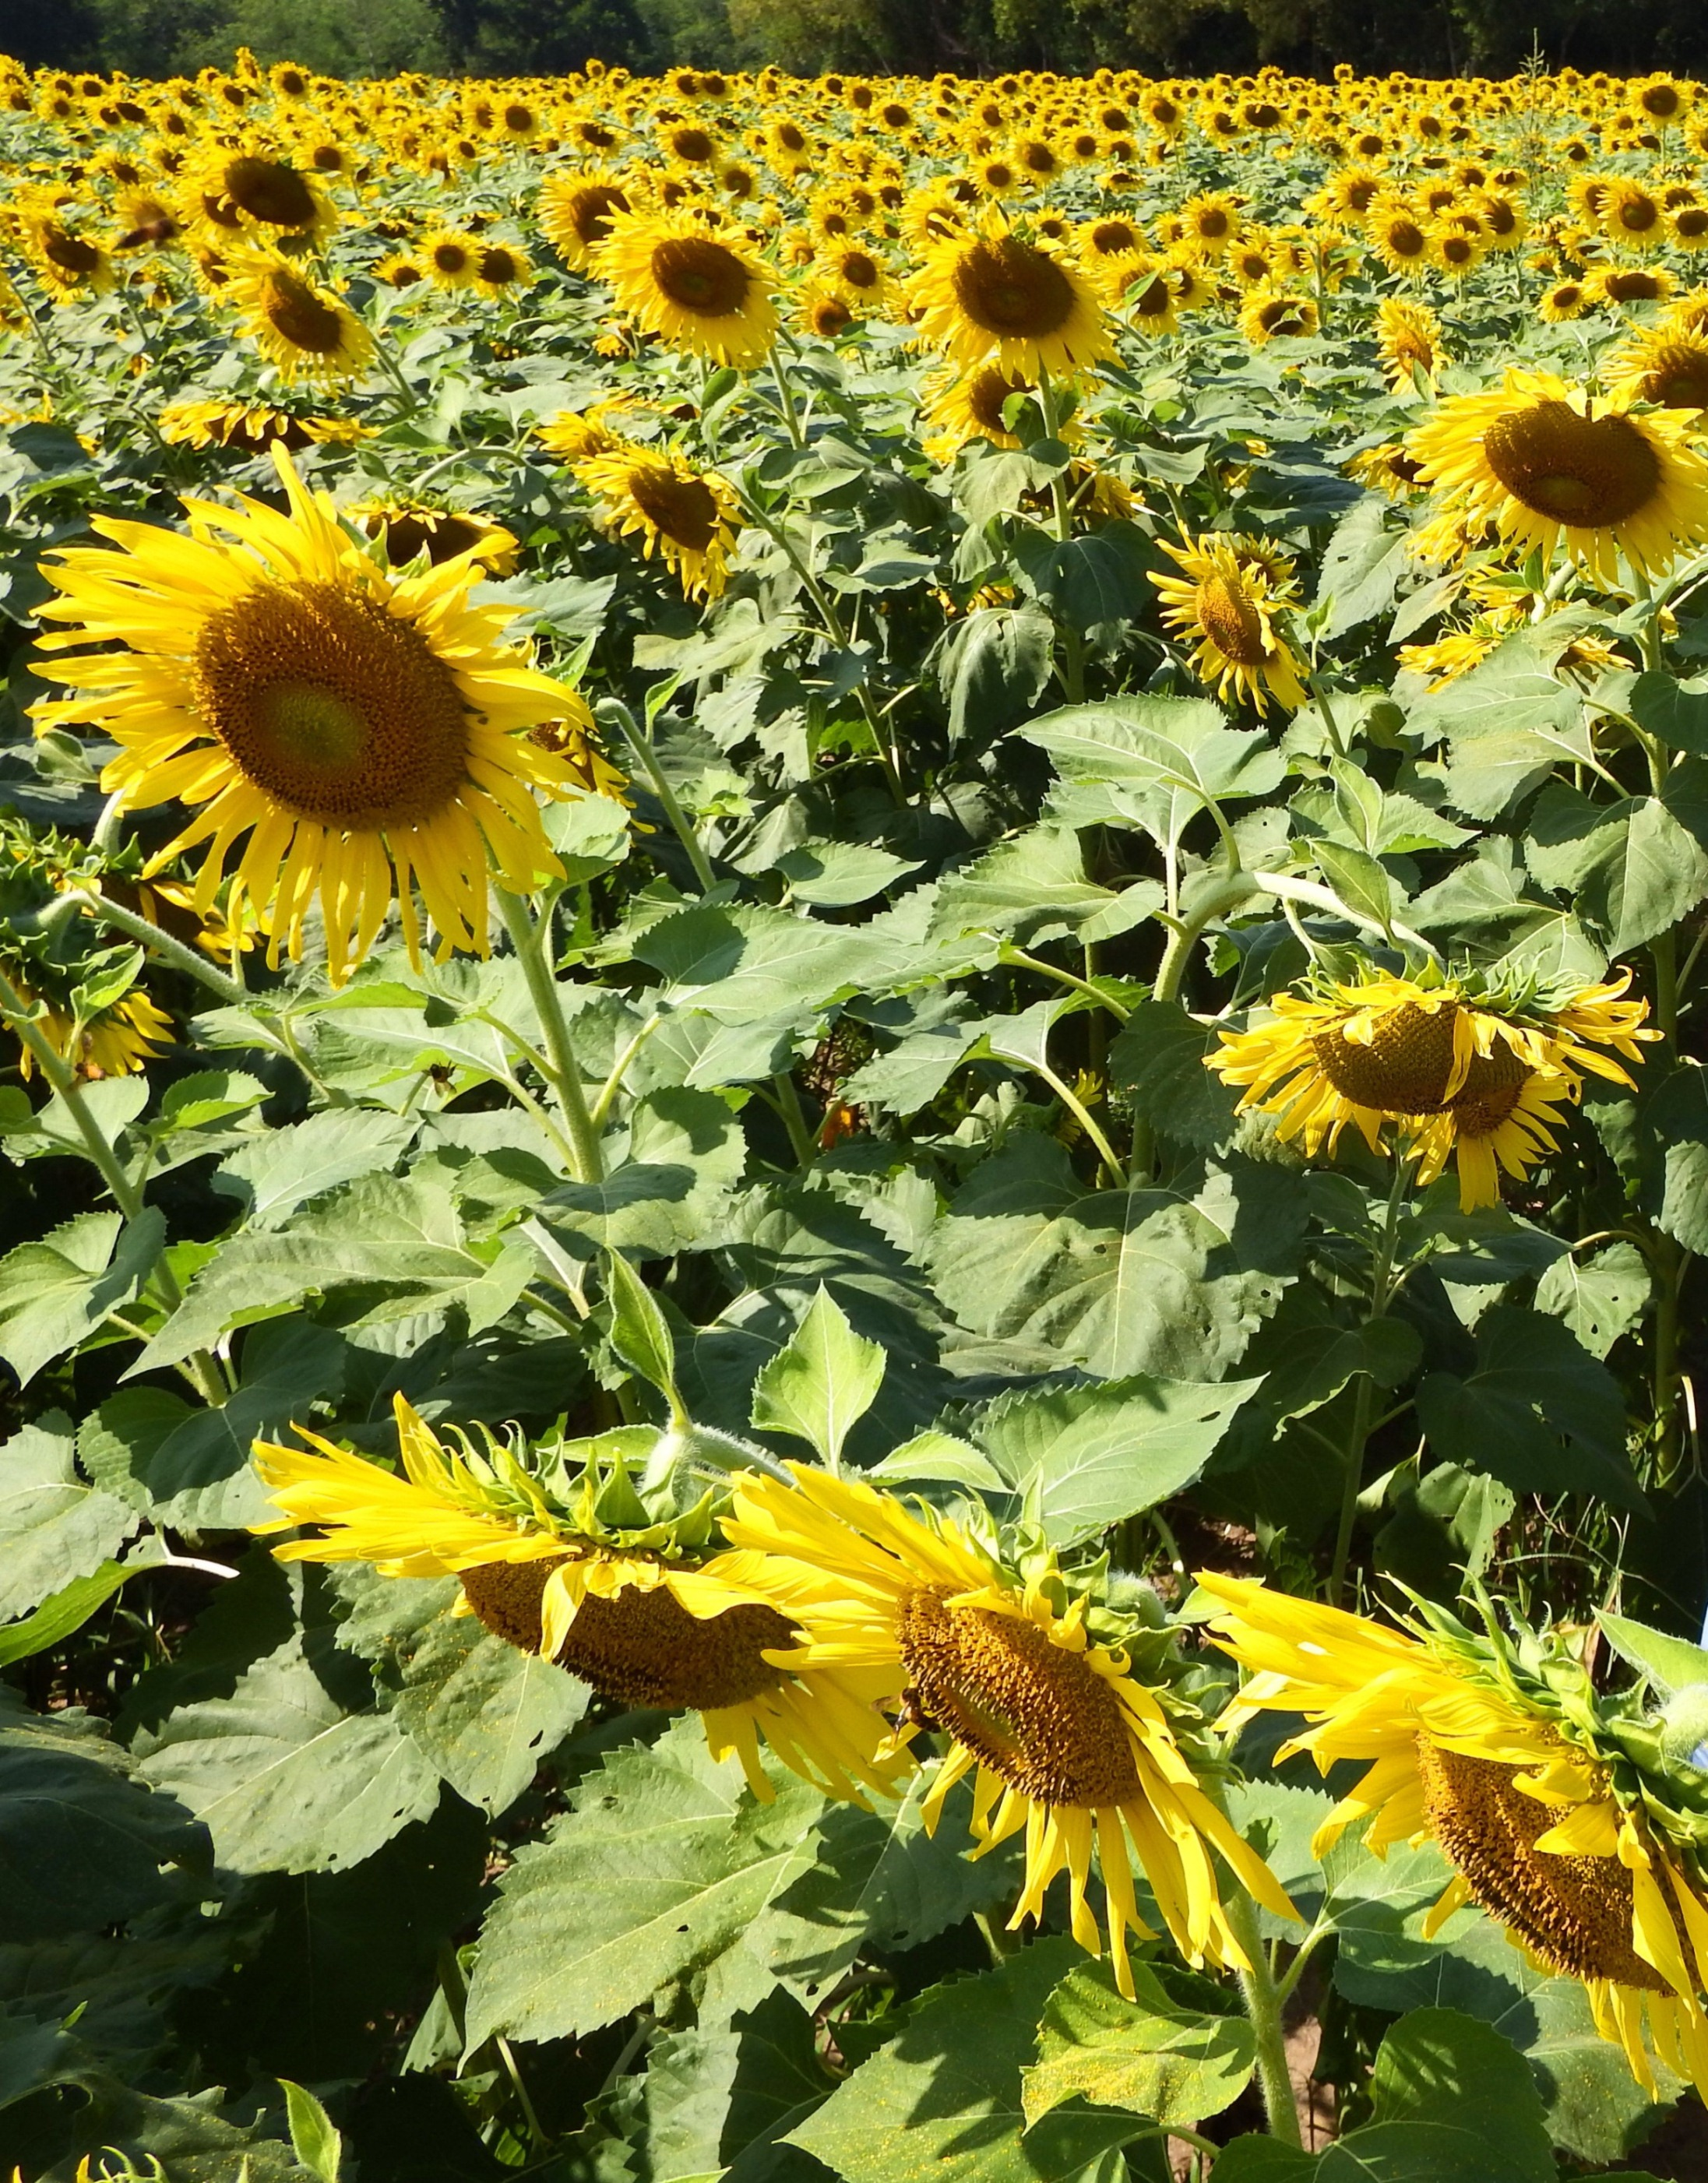 Sunflower Field, Plant, Rural, Photo, Pettles, HQ Photo